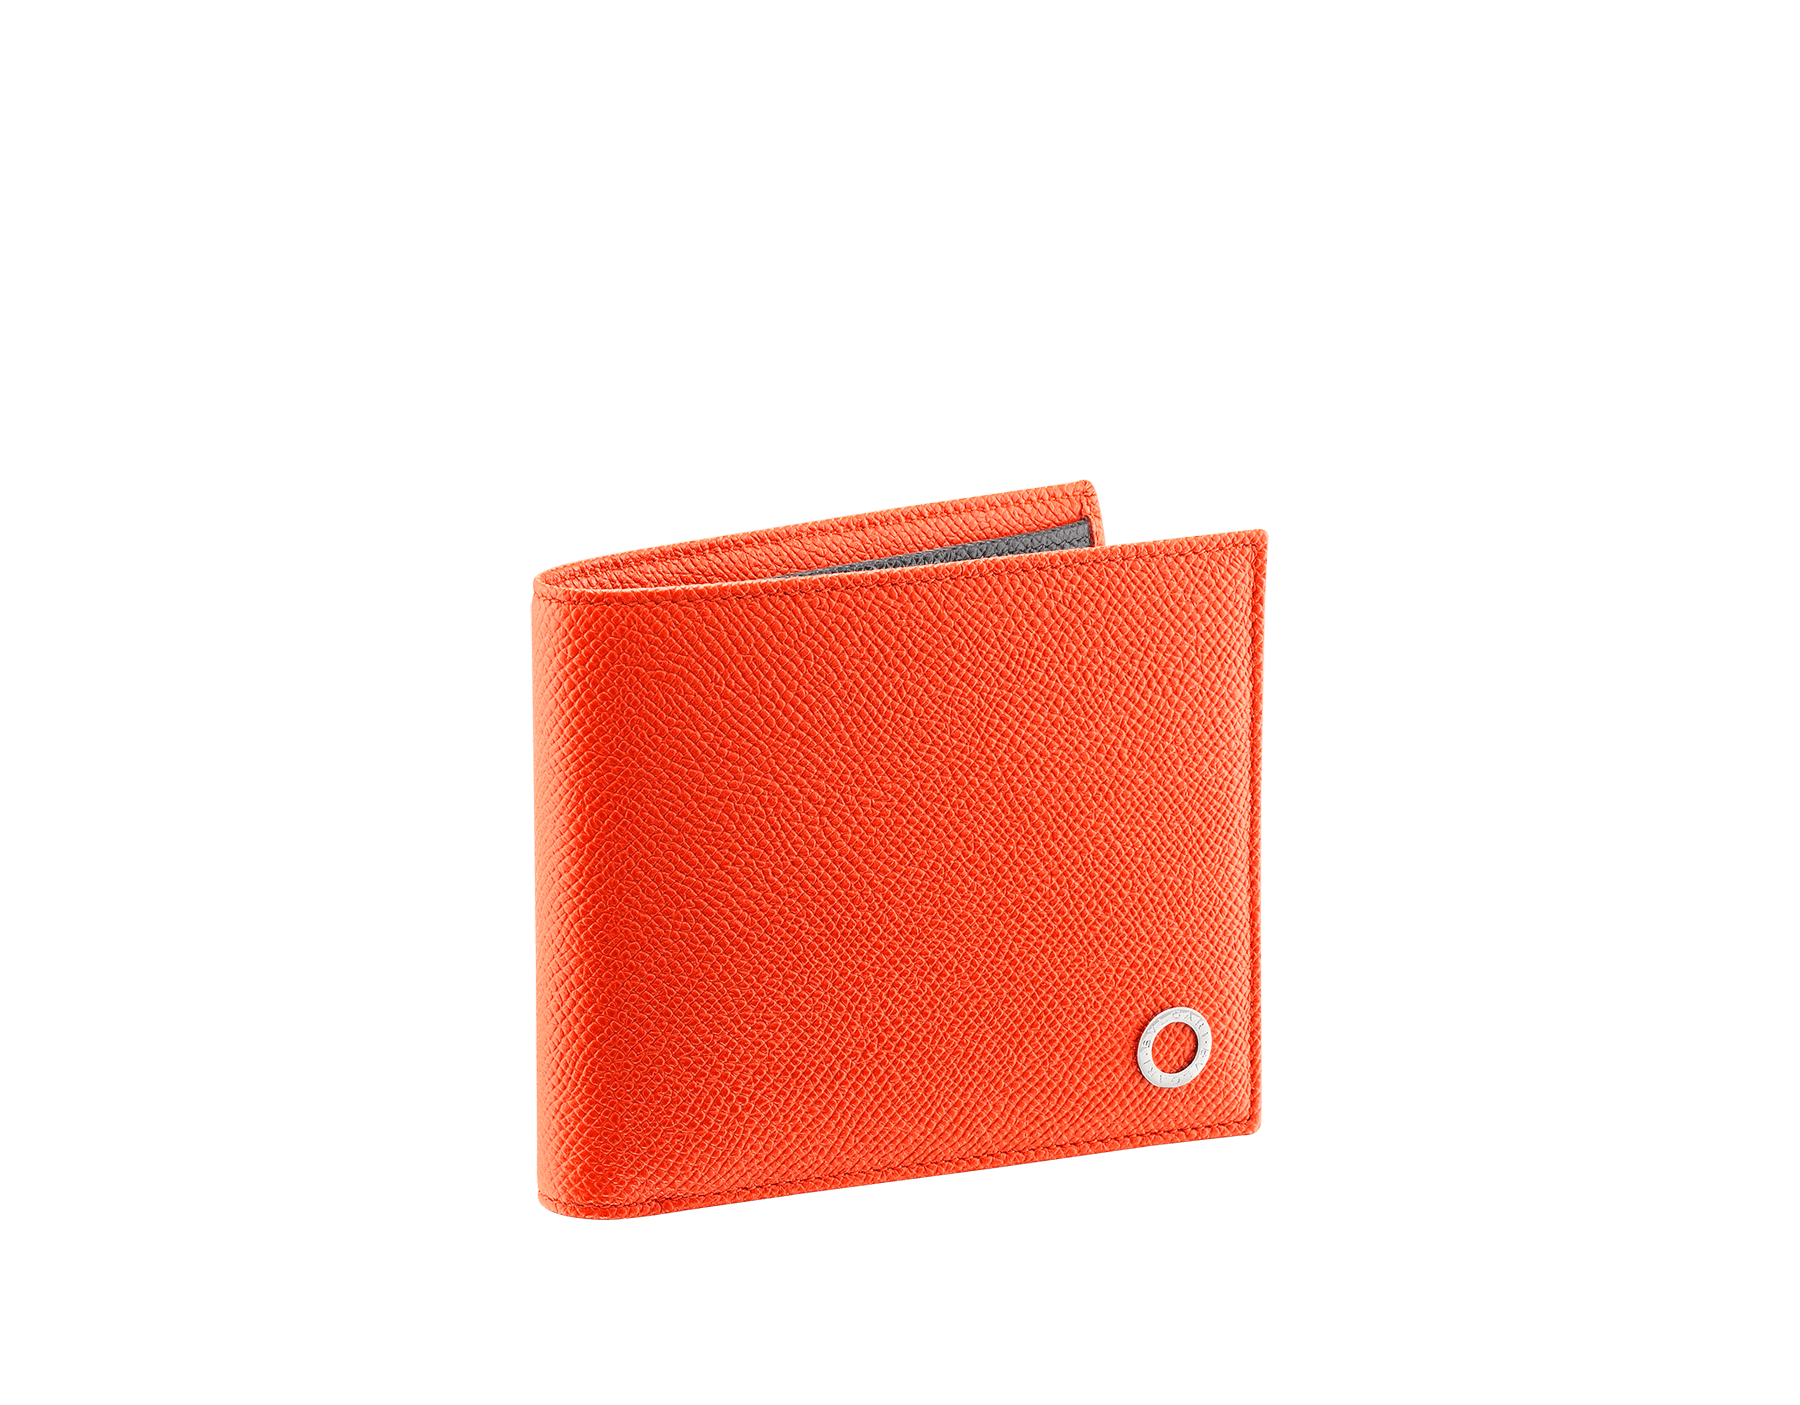 BVLGARI BVLGARI hipster wallet for men in fire amber and charcoal diamond grain calf leather. Iconic logo decoration in palladium-plated brass. 289110 image 1